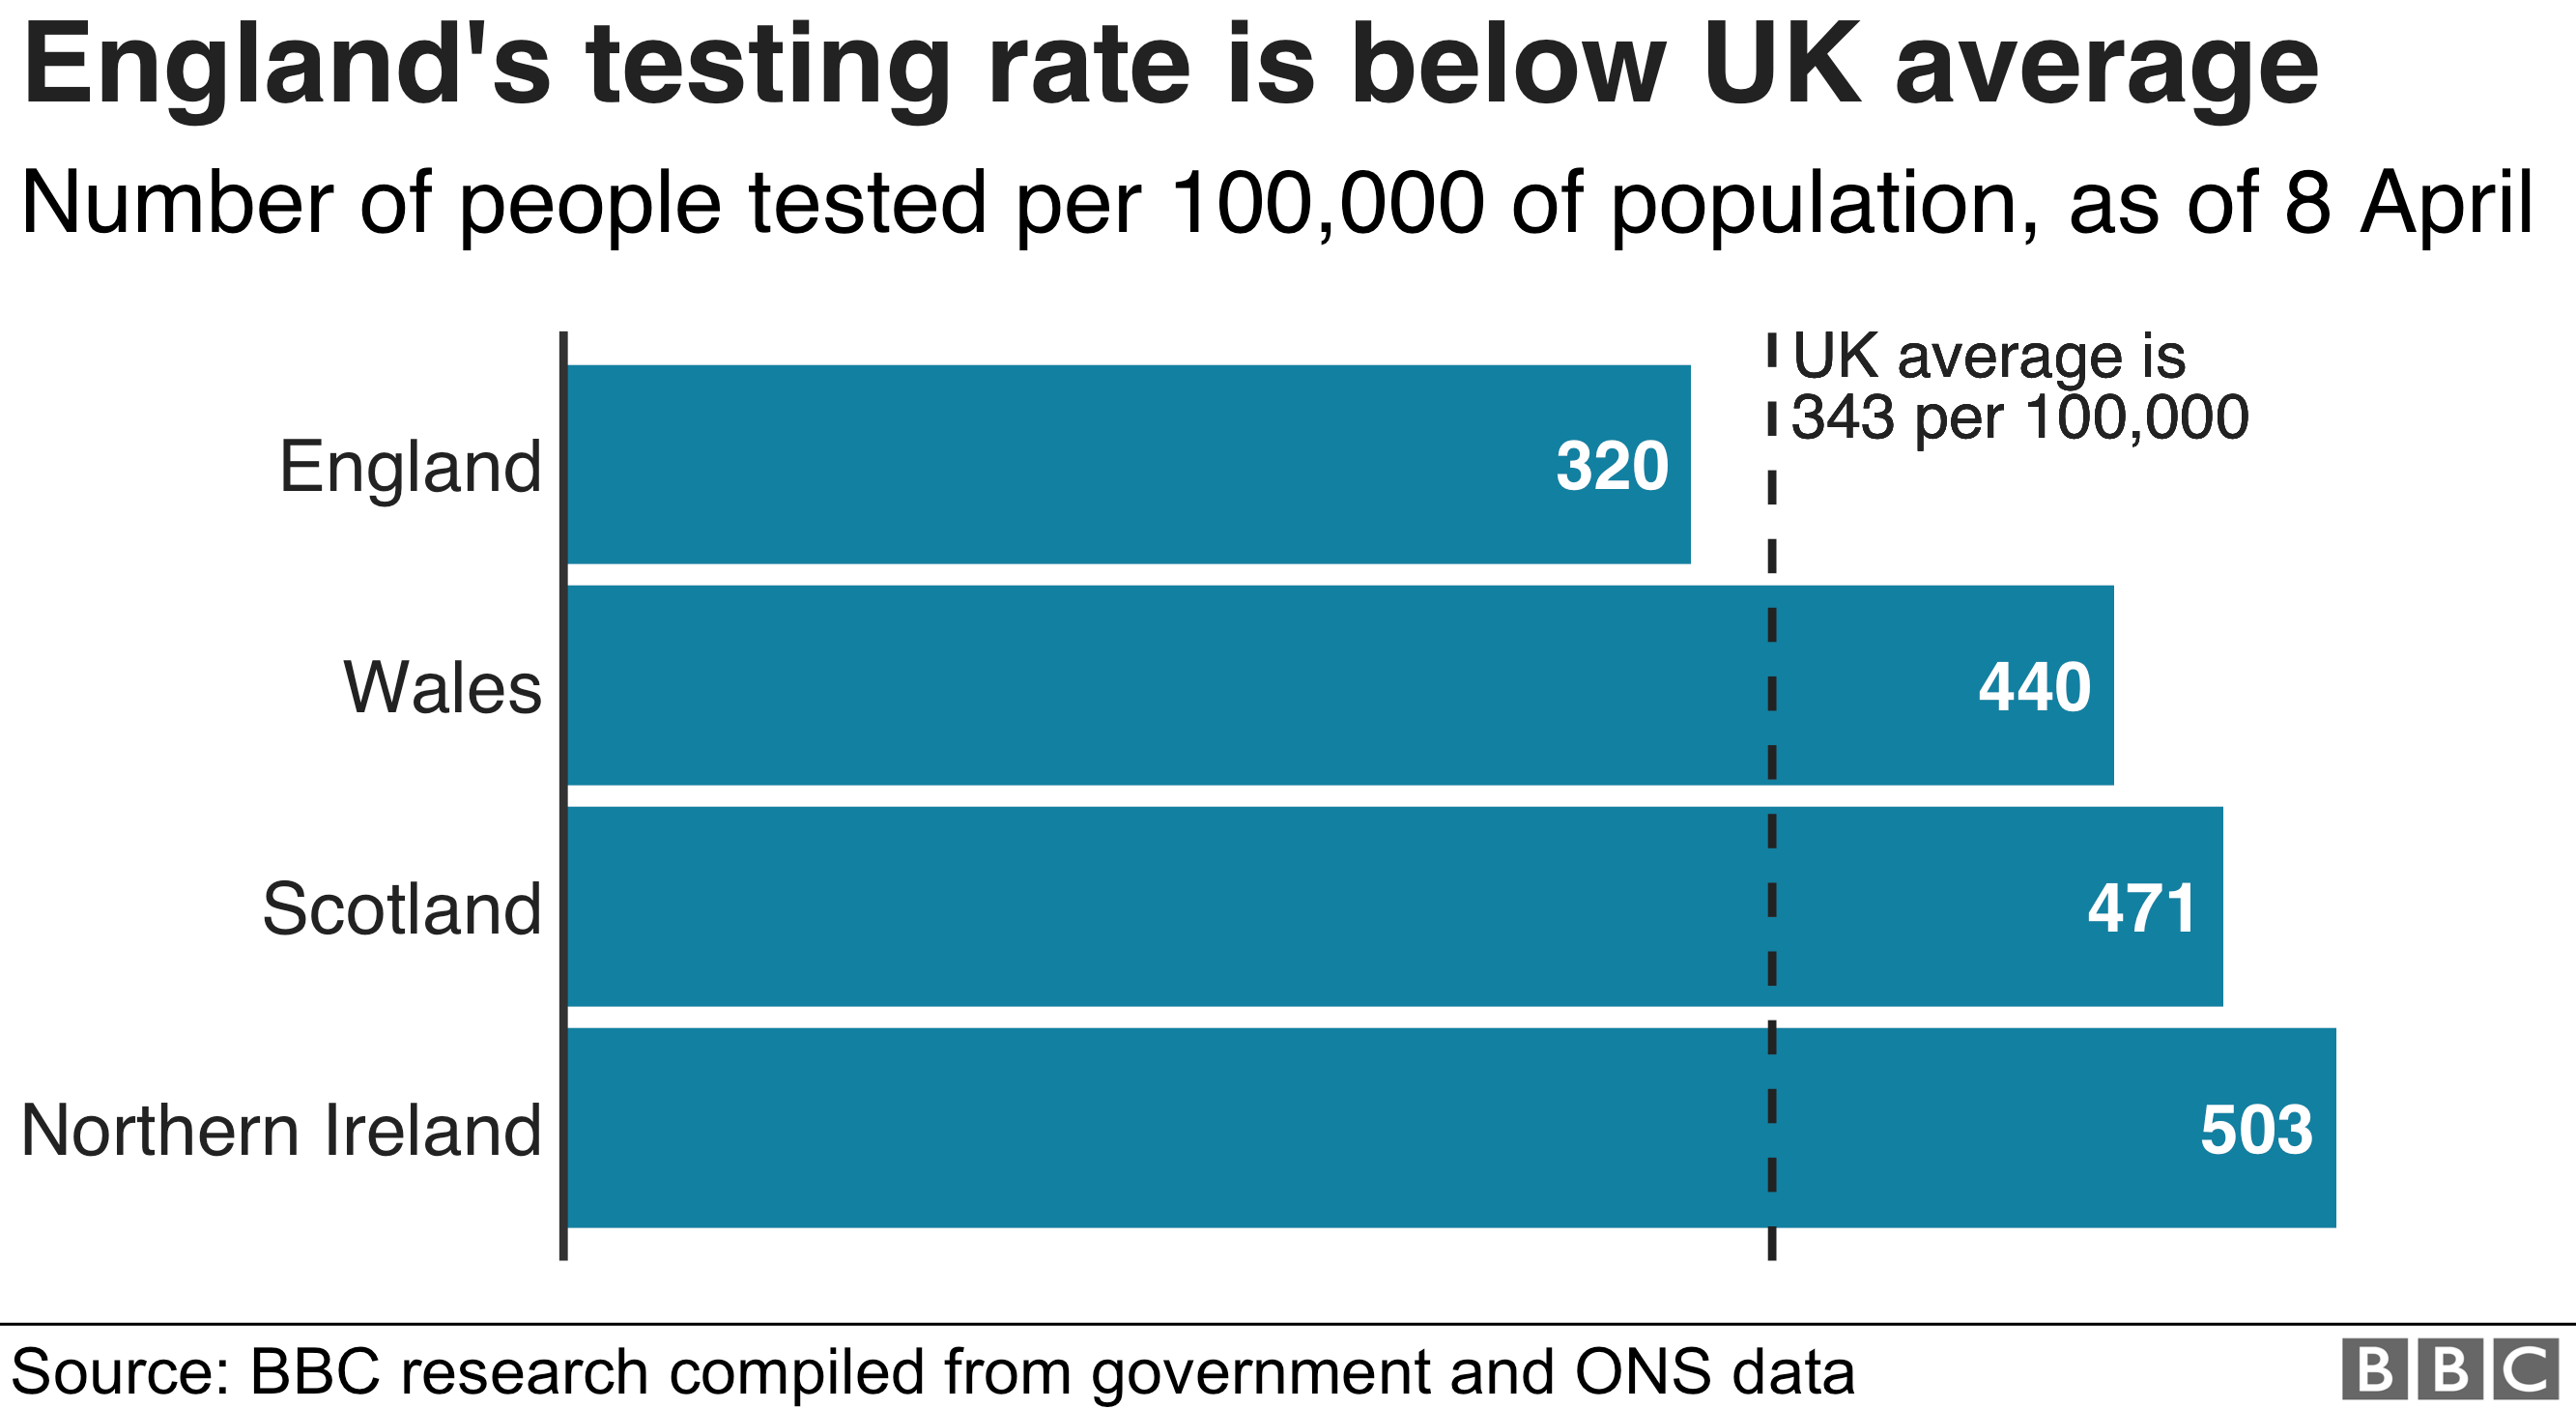 Chart compares coronavirus testing rates in England, Wales, Scotland and Northern Ireland